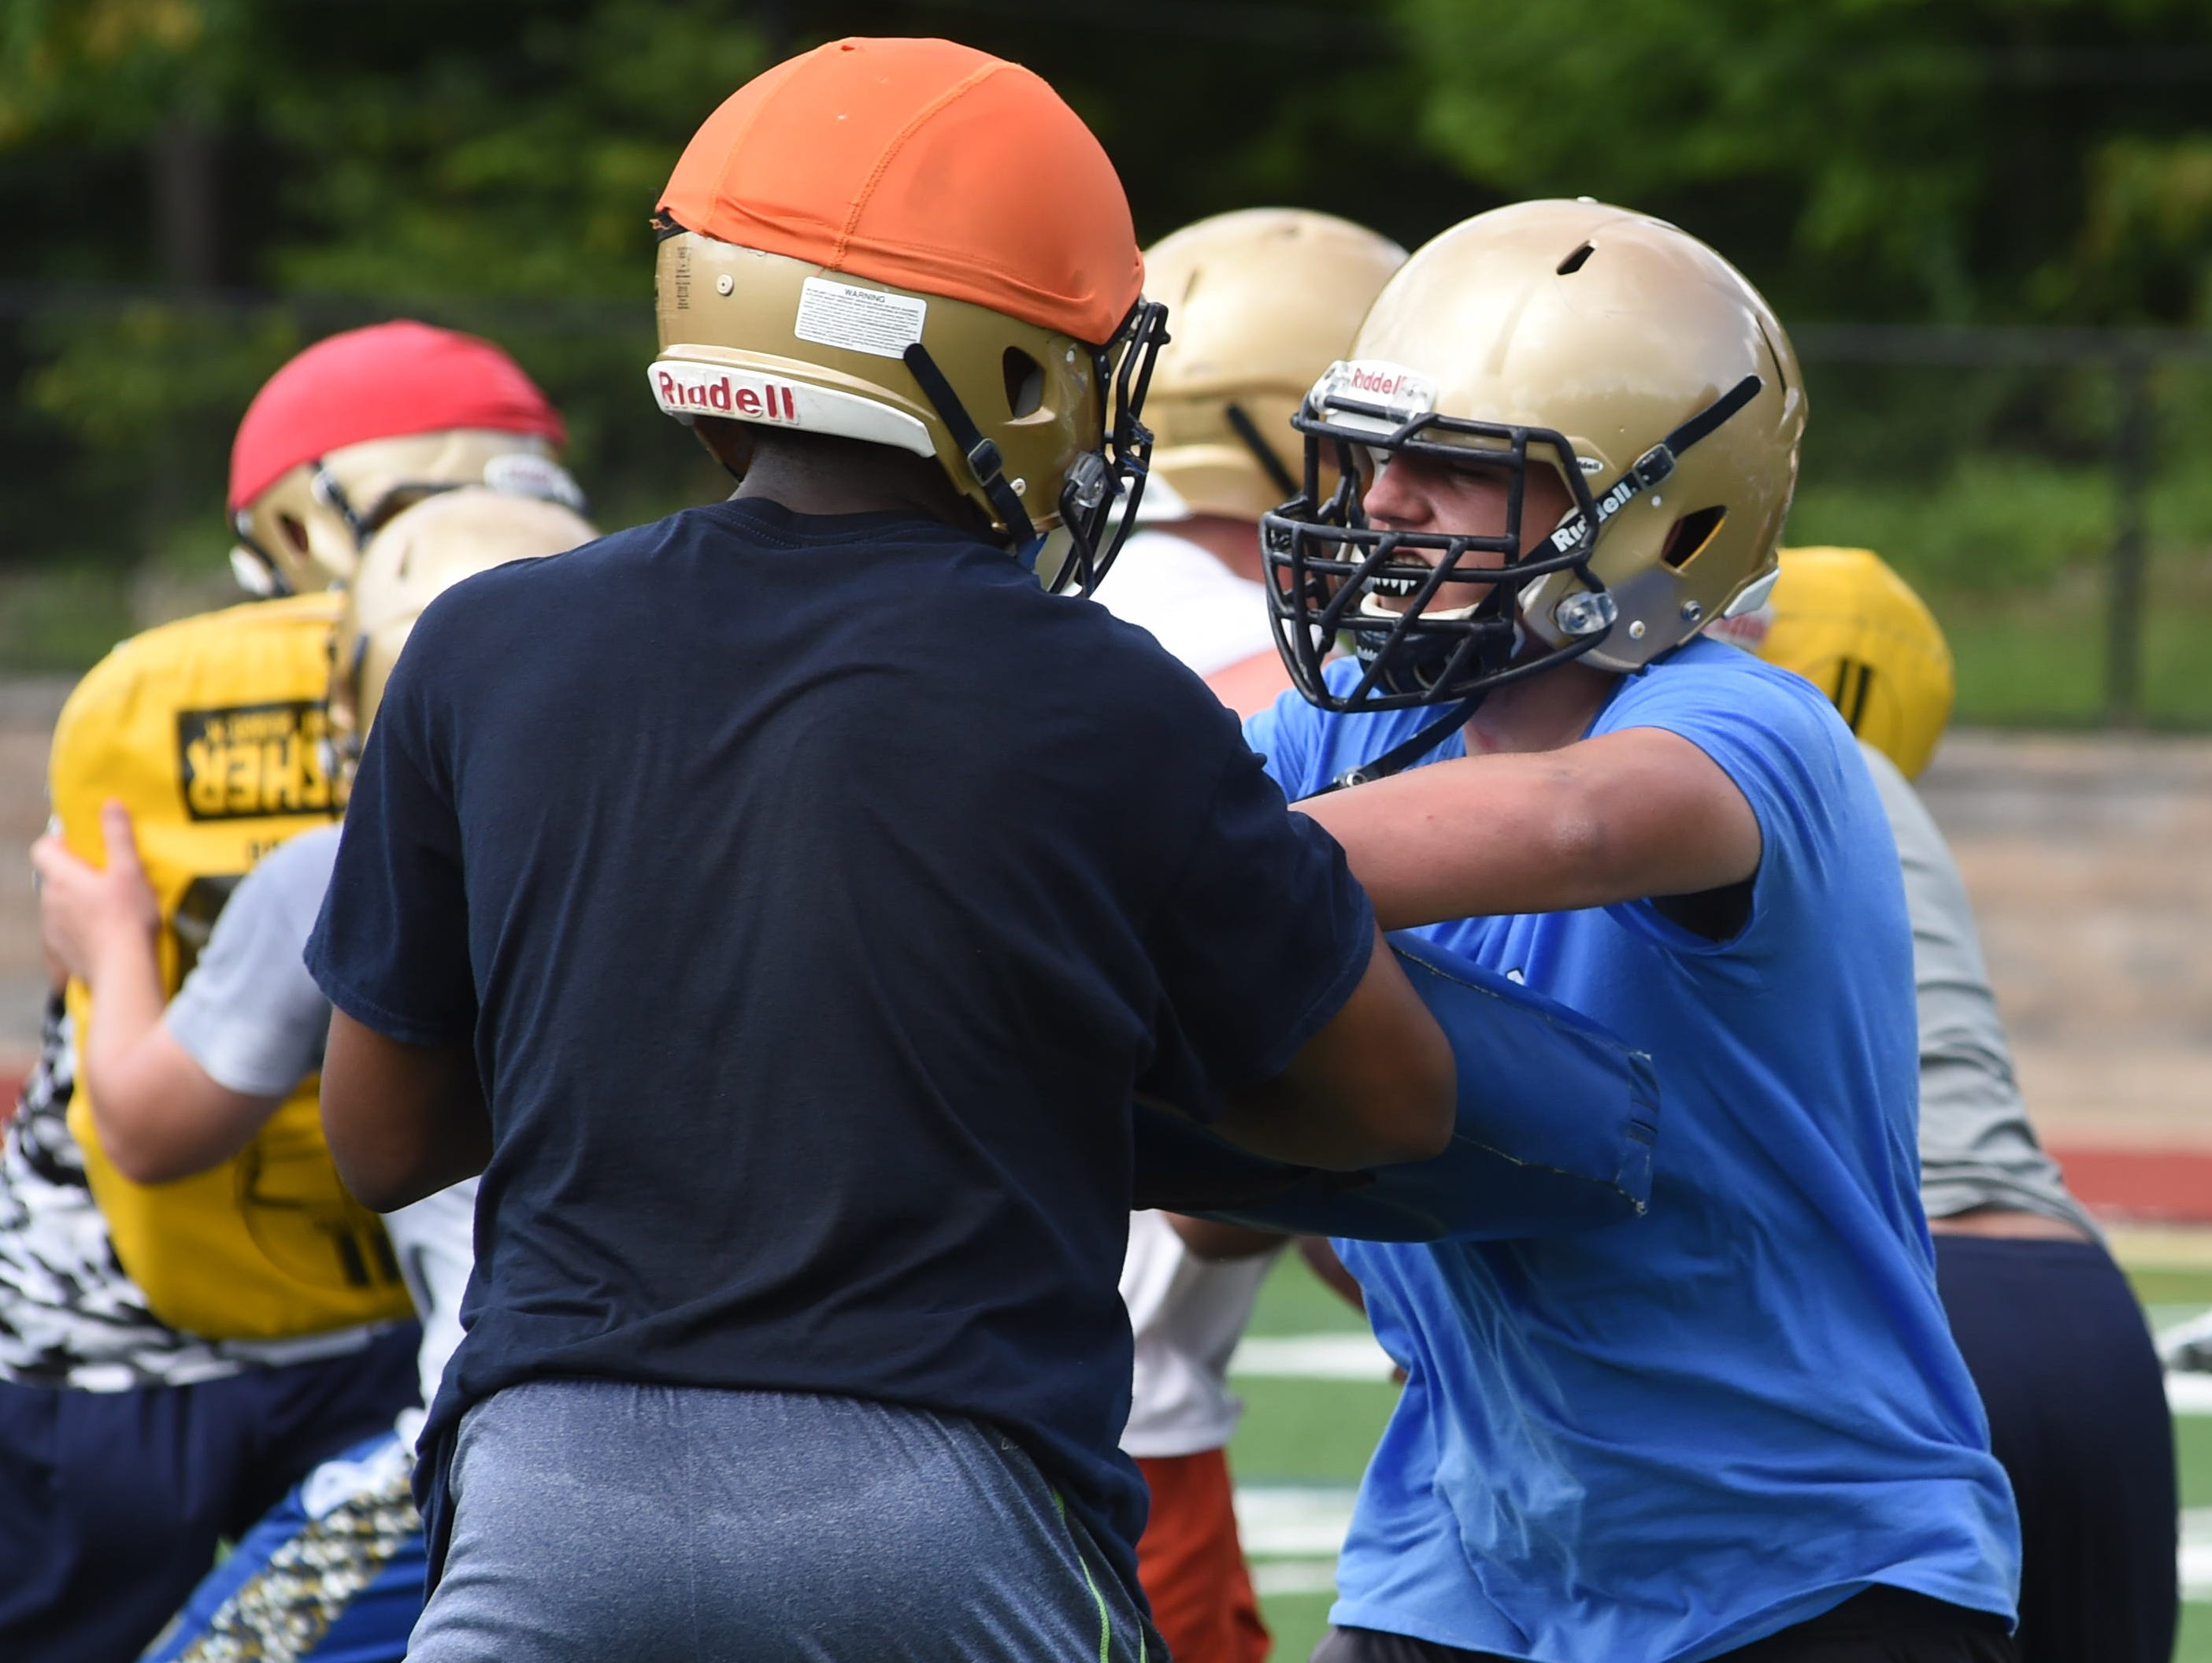 Juniors Malik Wright, left, and Dan Napolitano, right, of Our Lady of Lourdes High School grapple during preseason football practice.